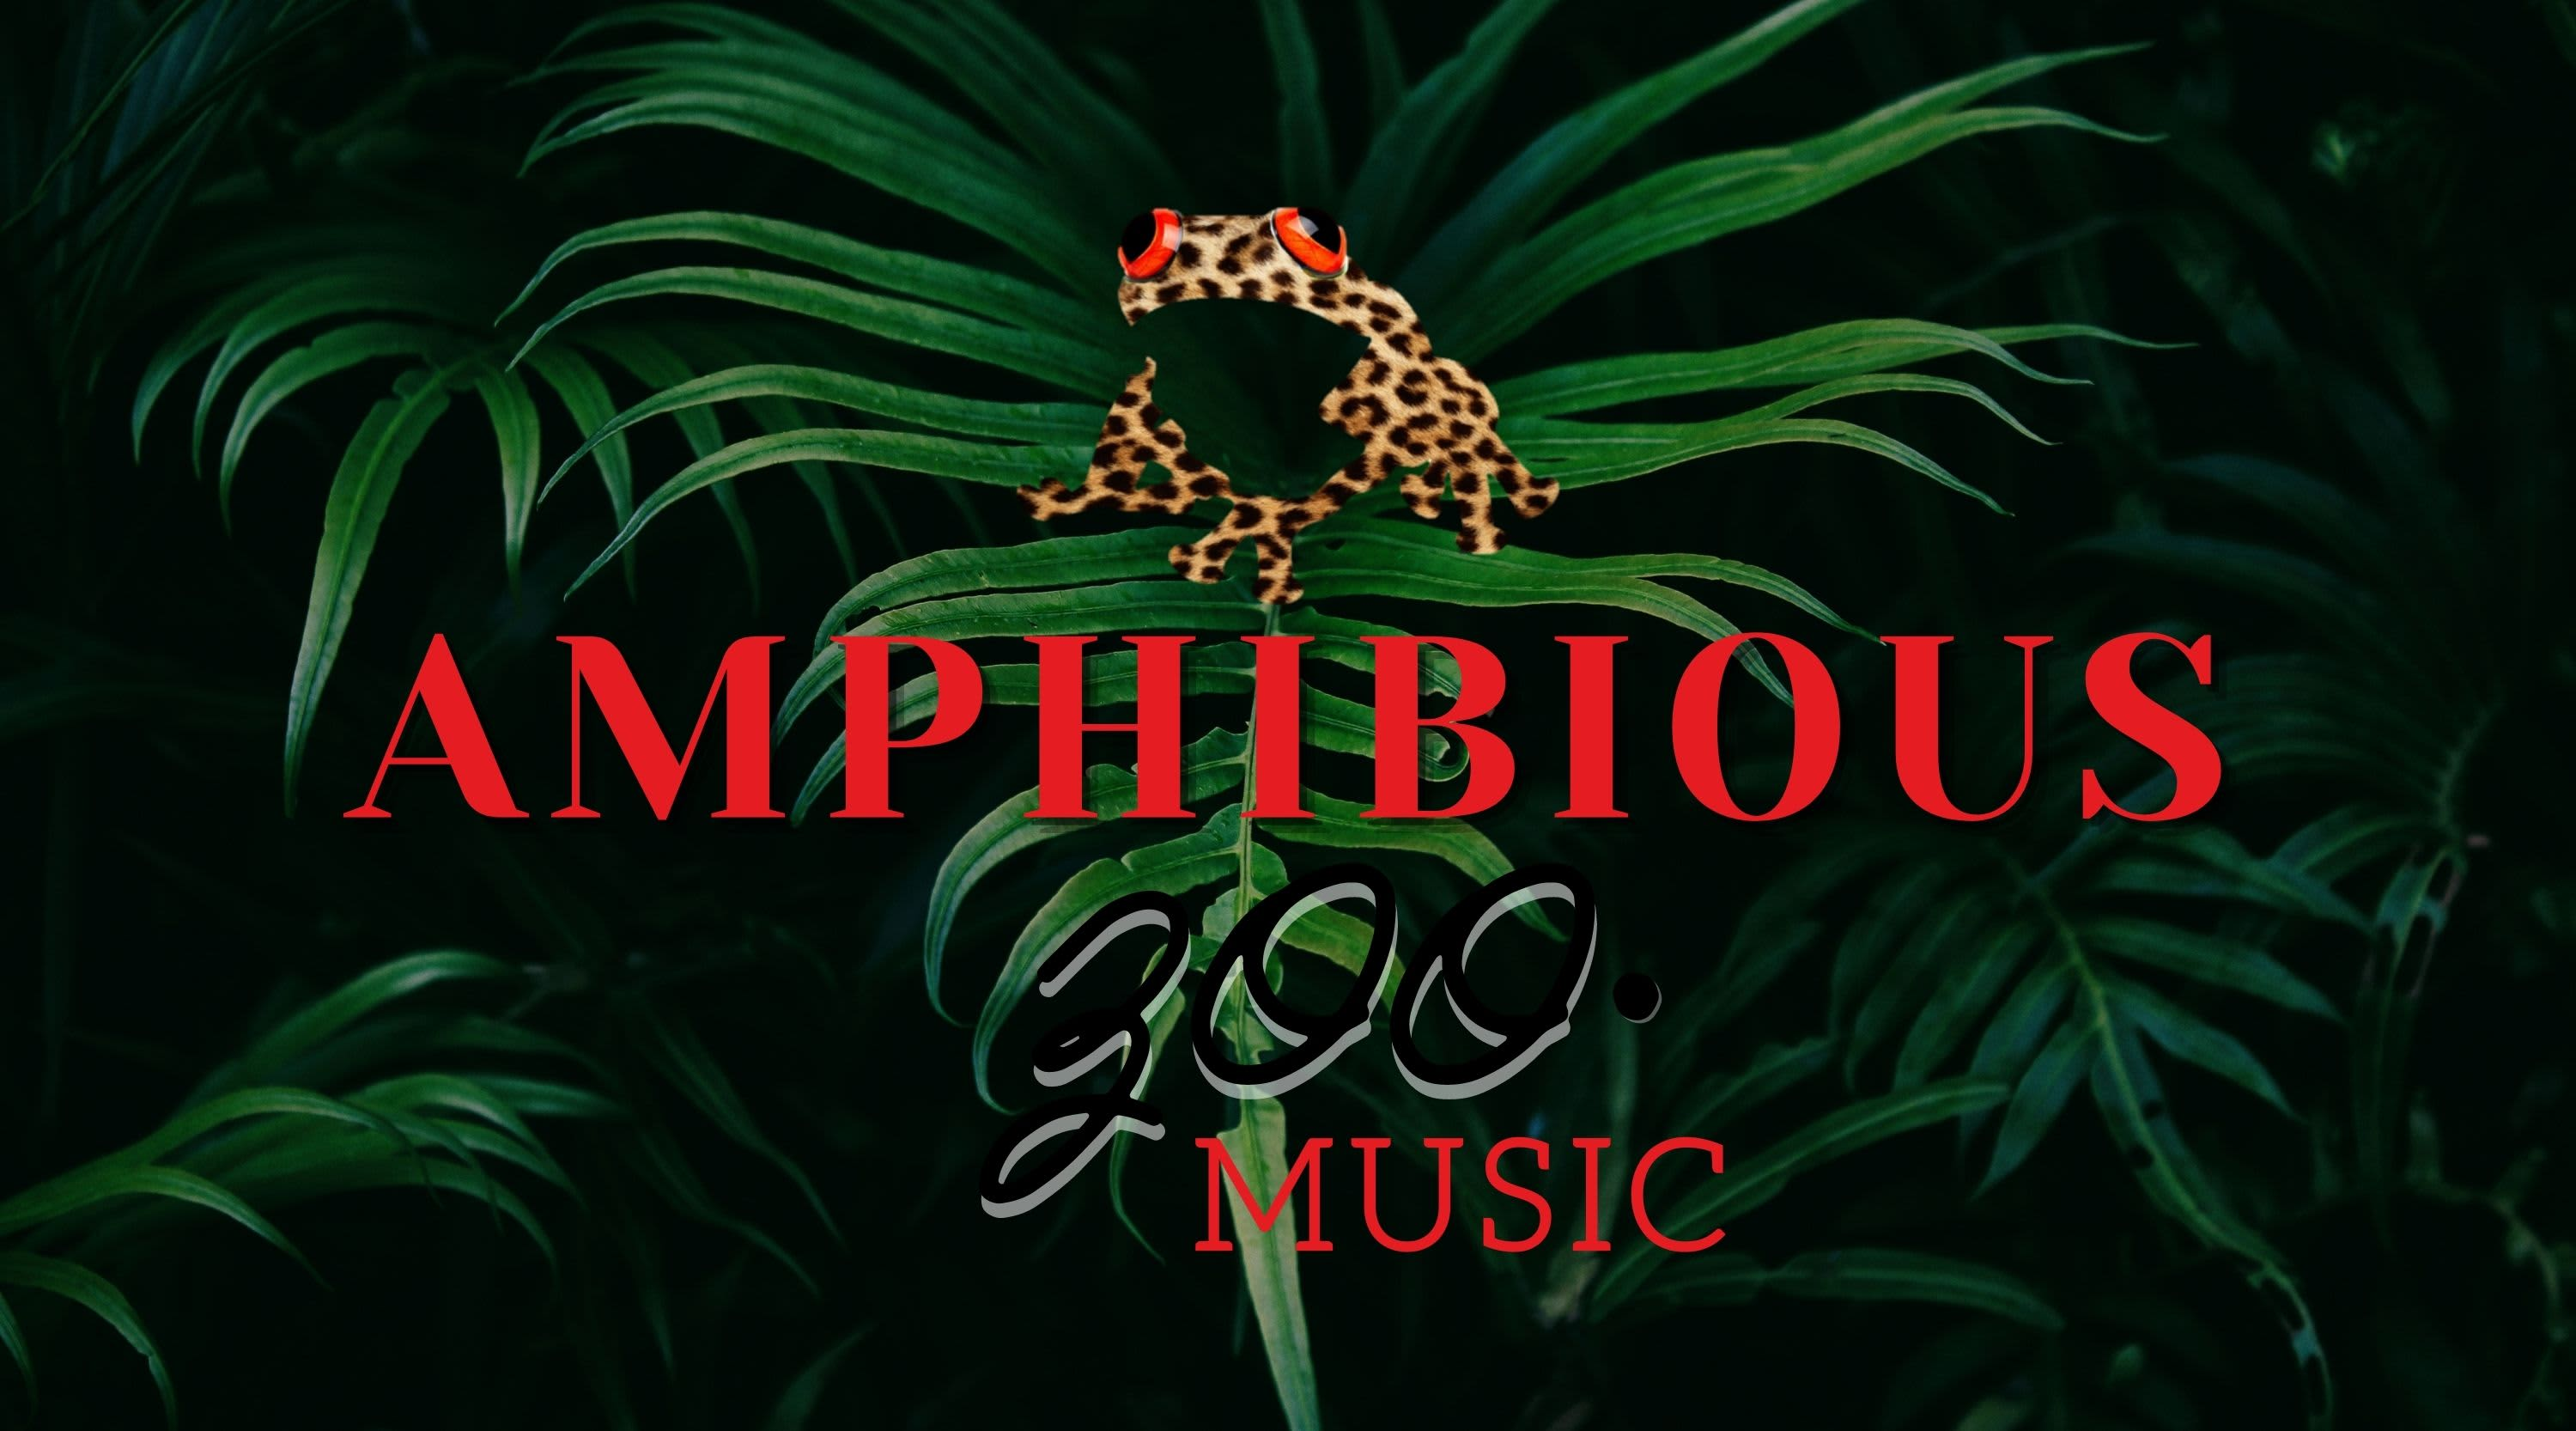 Label Special: Amphibious Zoo Music